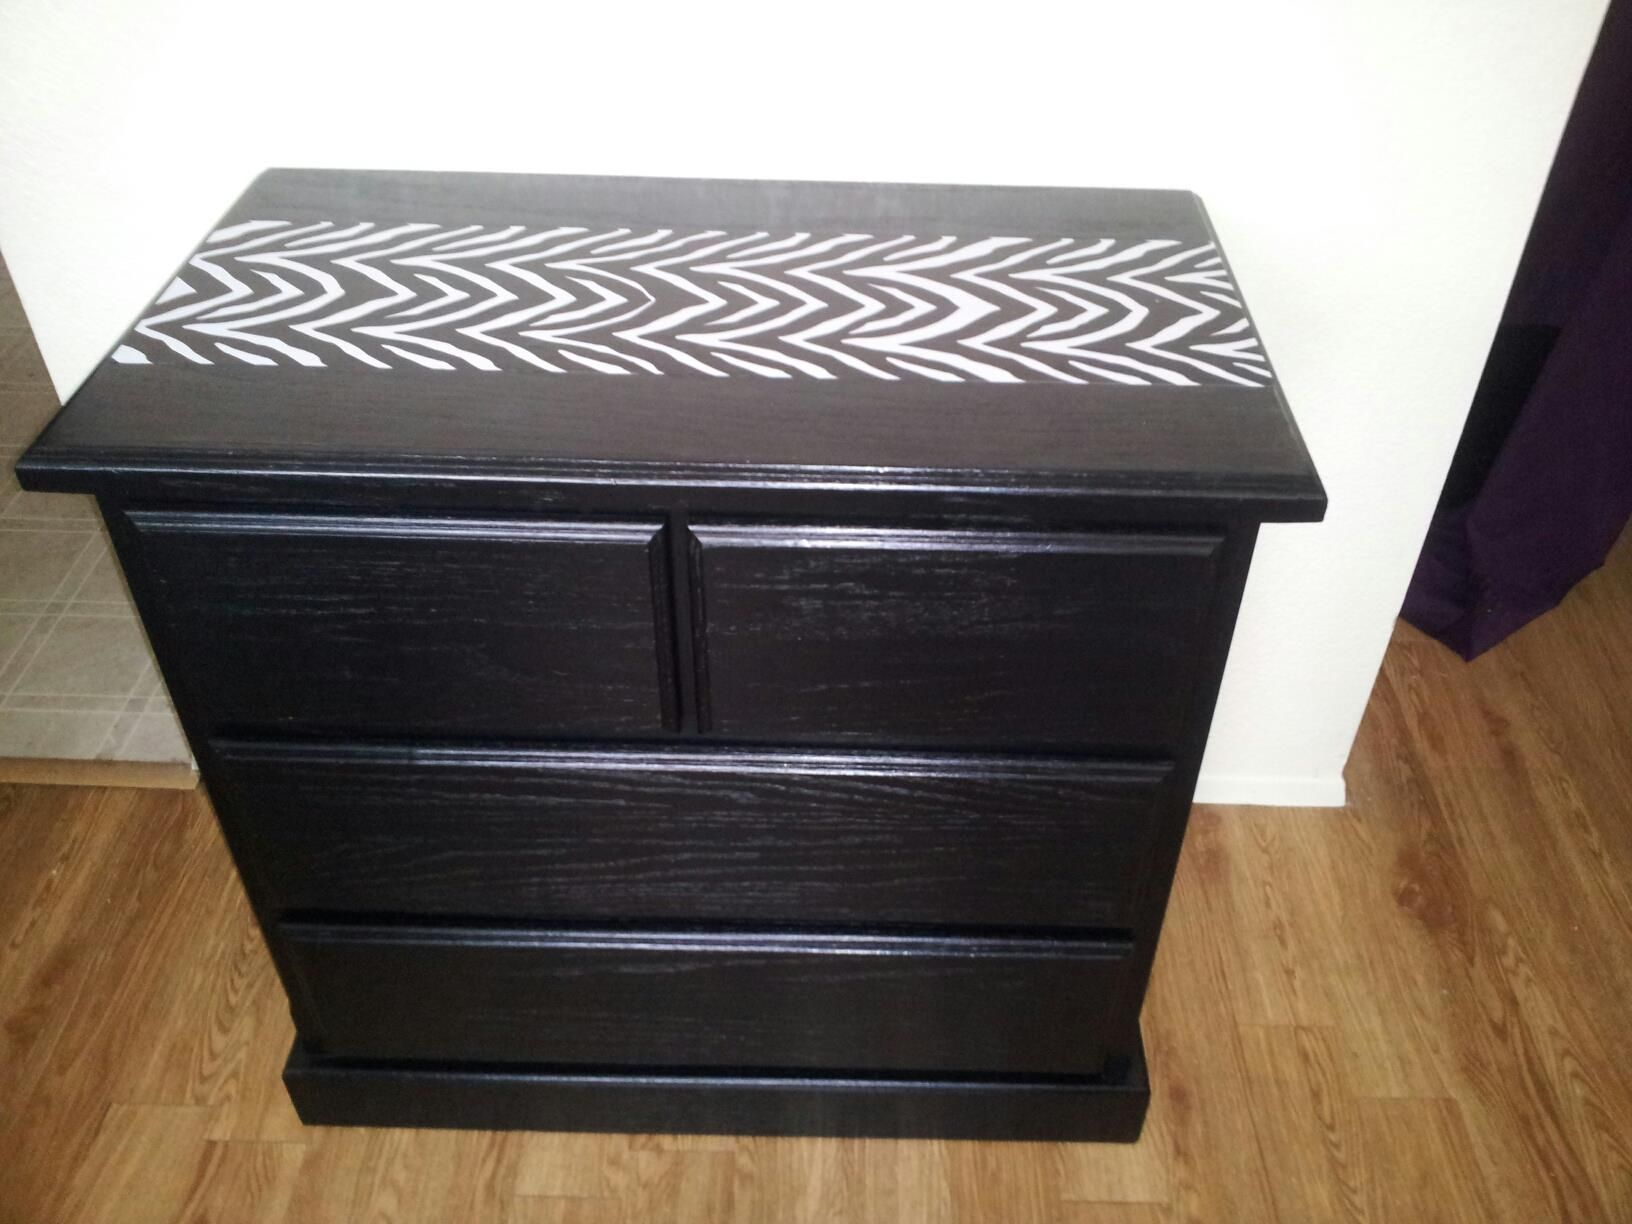 drawer dresser has been repainted in a high gloss black paint  -  drawer dresser has been repainted in a high gloss black paint with blackand white